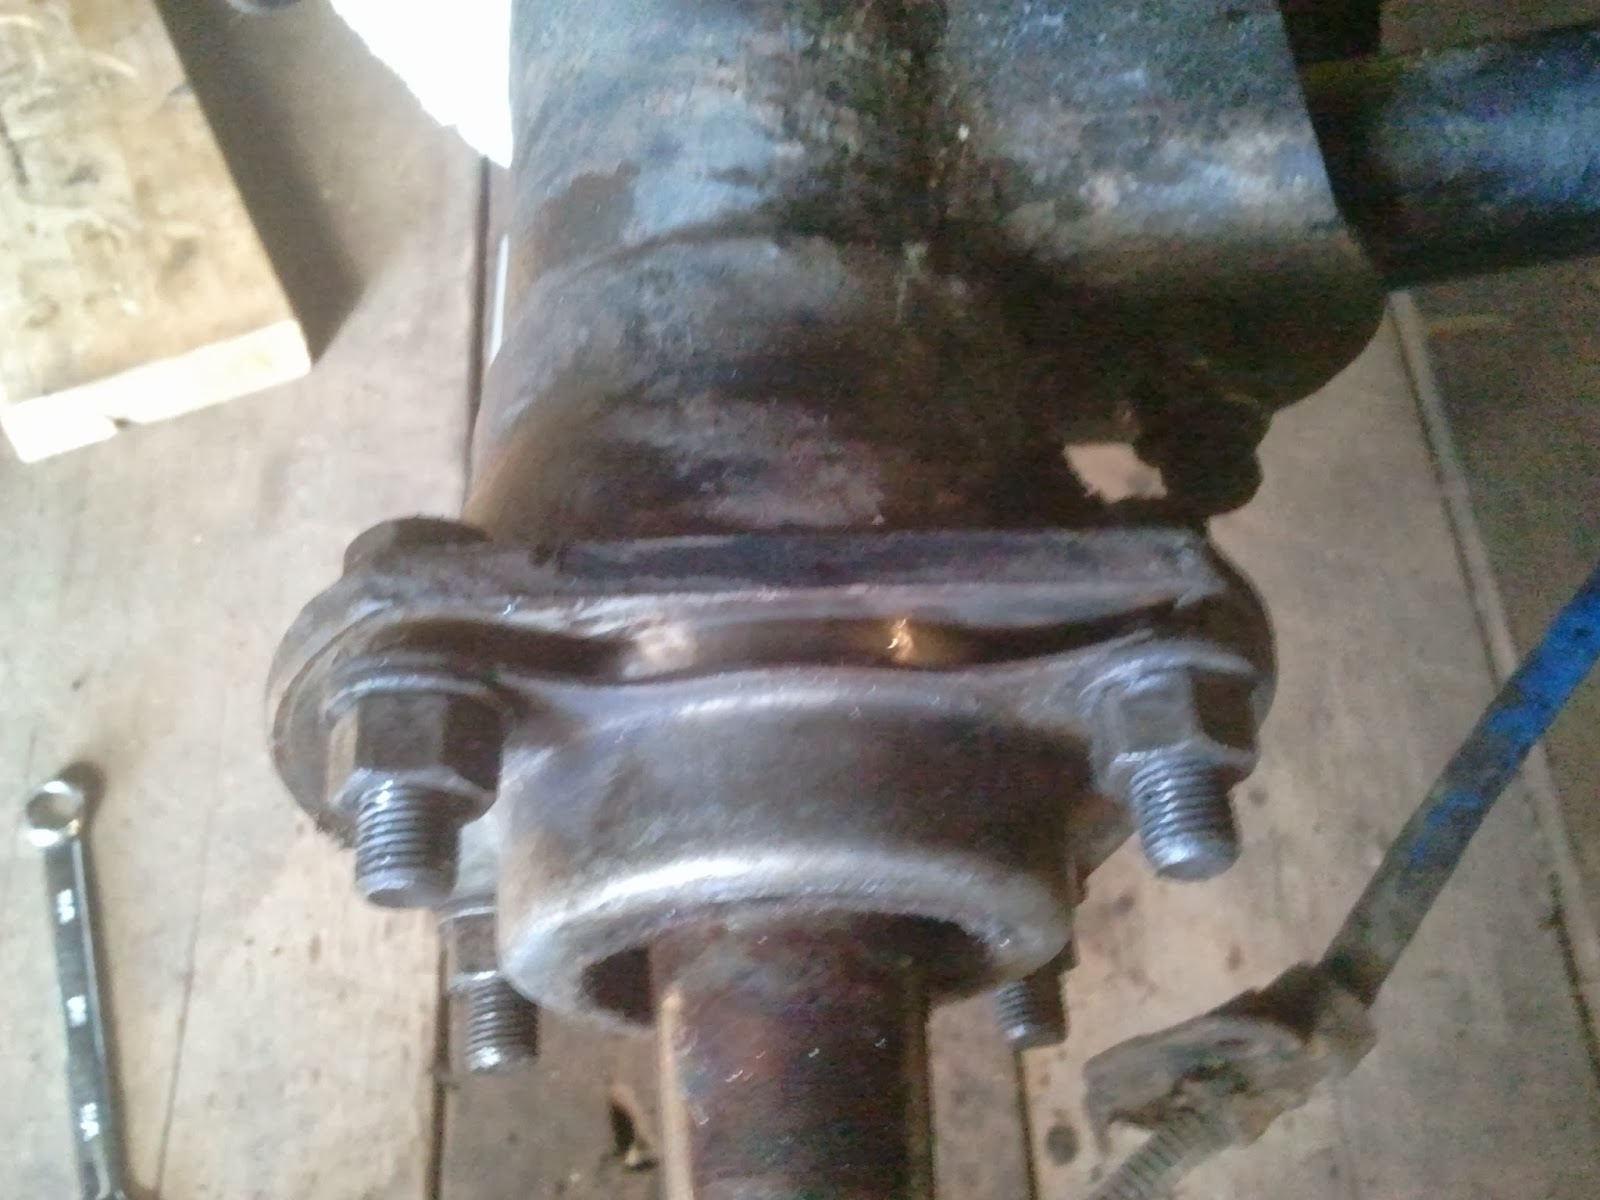 Outer race half way in Spicer 3010 axle housing Volvo Amazon